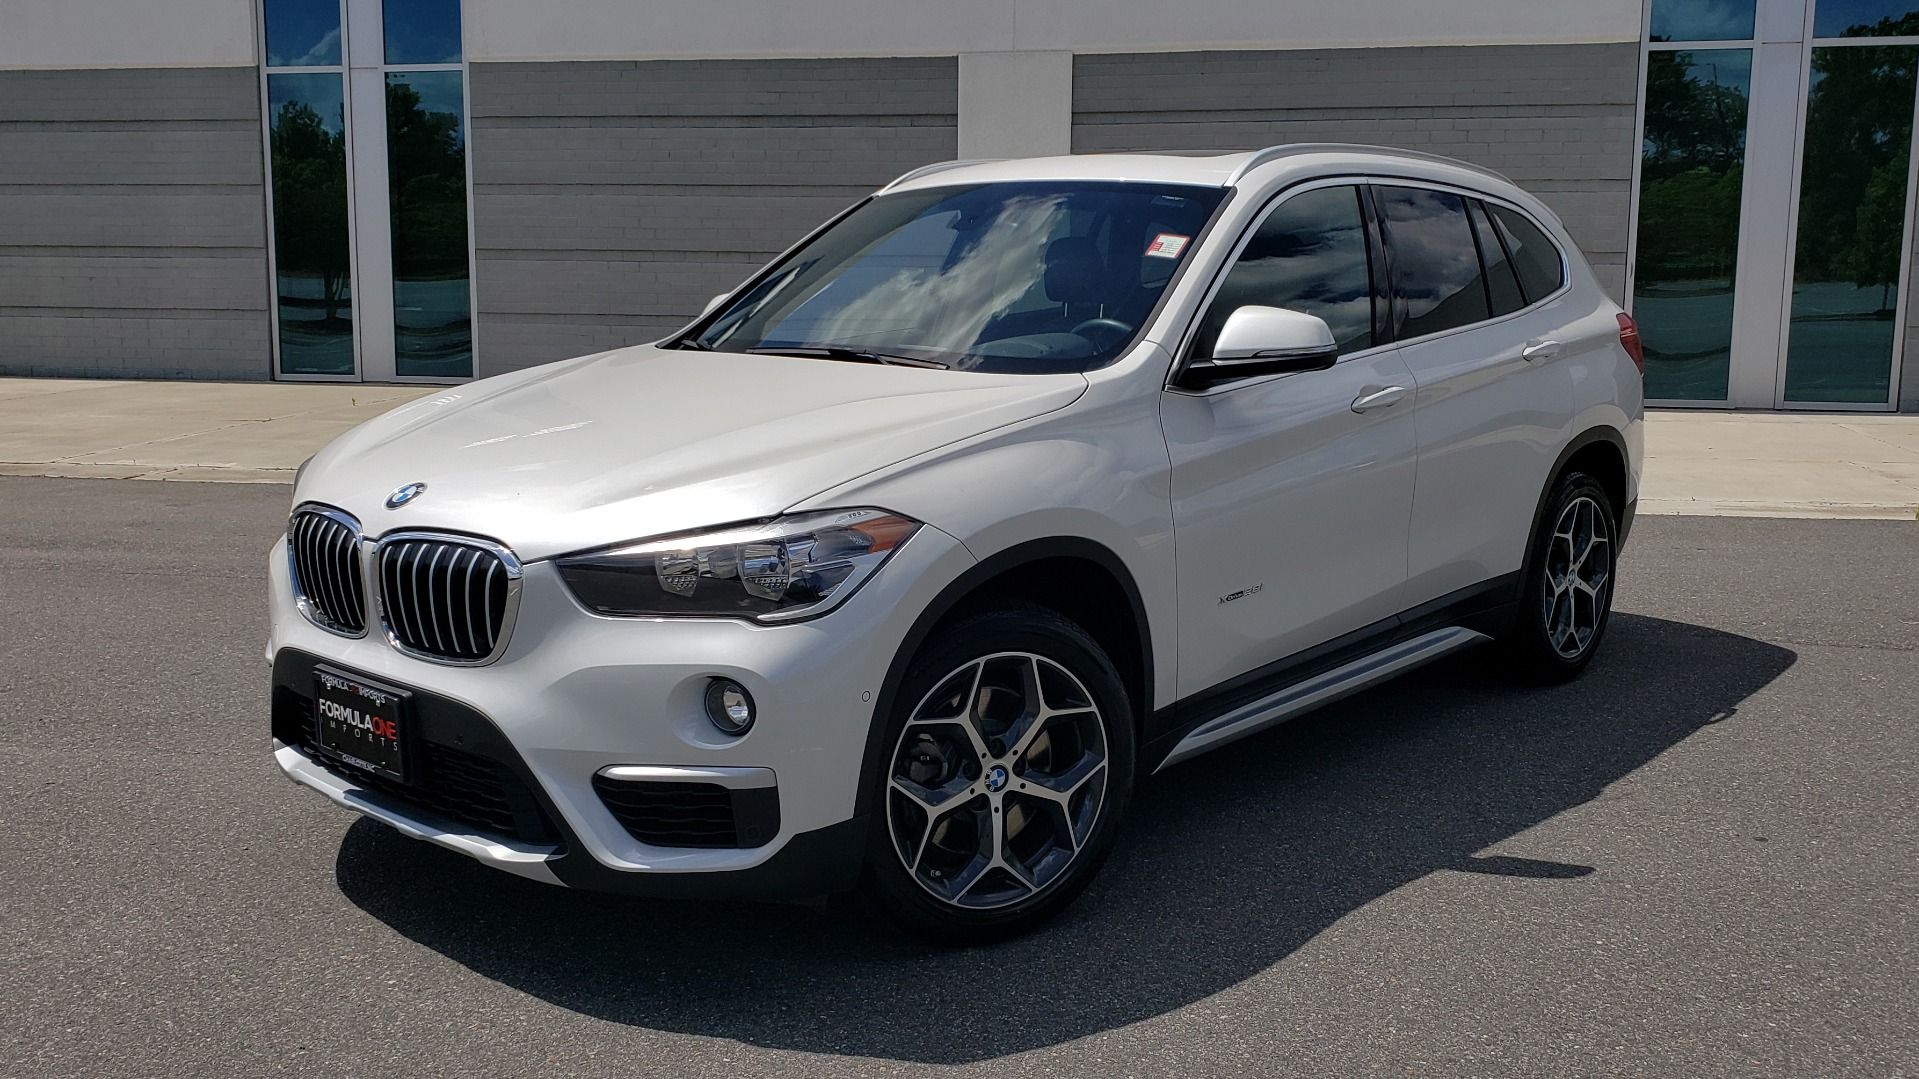 Used 2018 BMW X1 XDRIVE28I / NAV / CONV PKG / HTD SEATS / APPLE / PANO-ROOF / REARVIEW for sale $27,995 at Formula Imports in Charlotte NC 28227 1